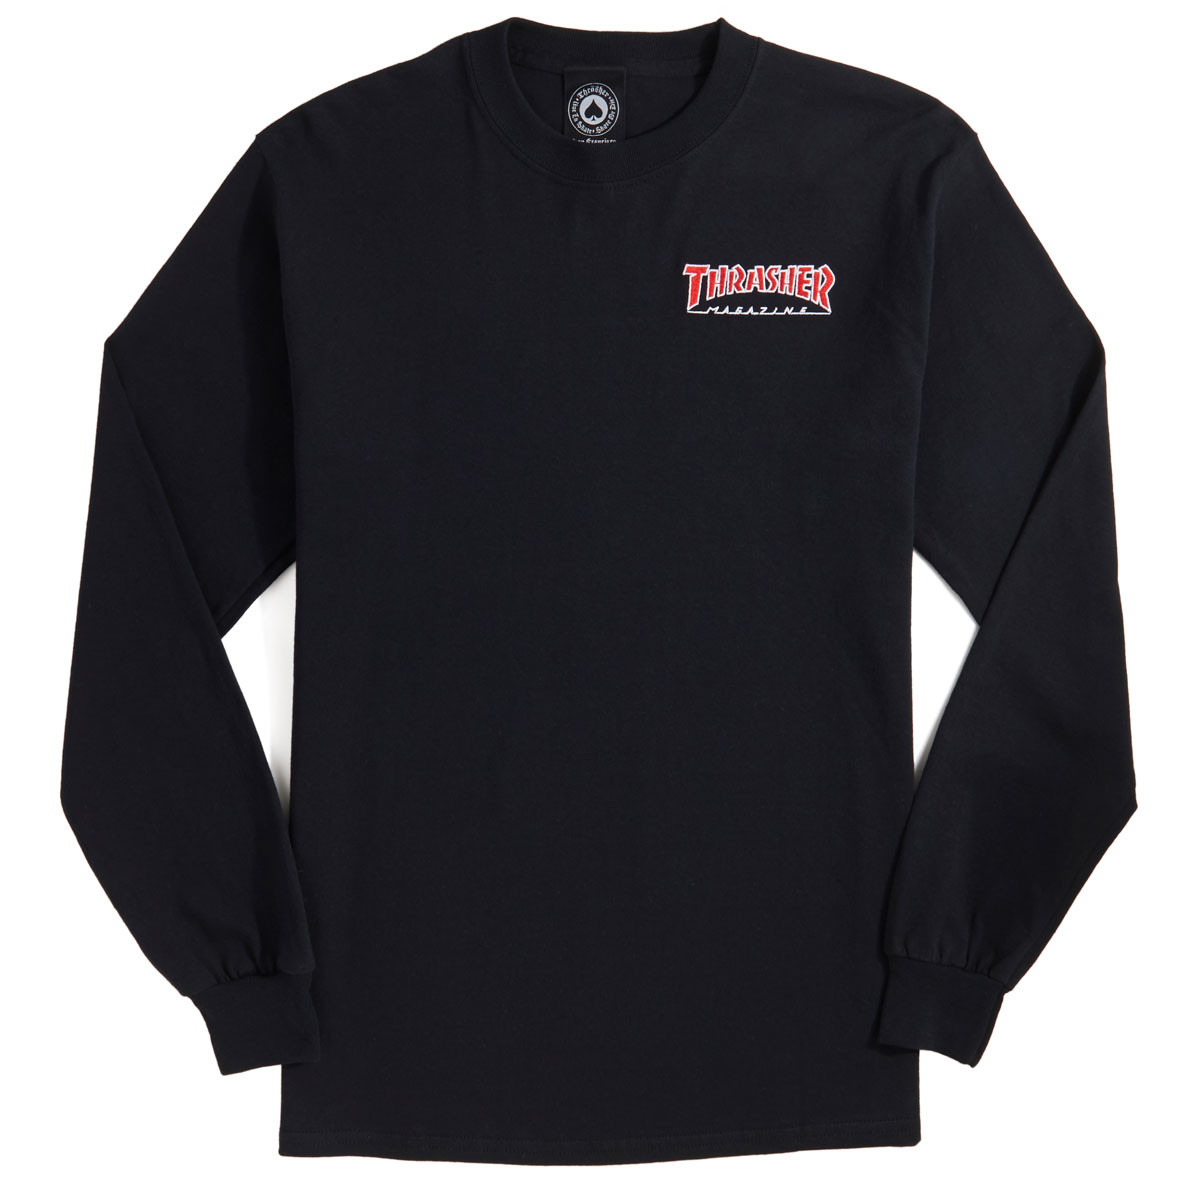 2609888aa3bd Thrasher Embroidered Outlined Long Sleeve T-Shirt - Black